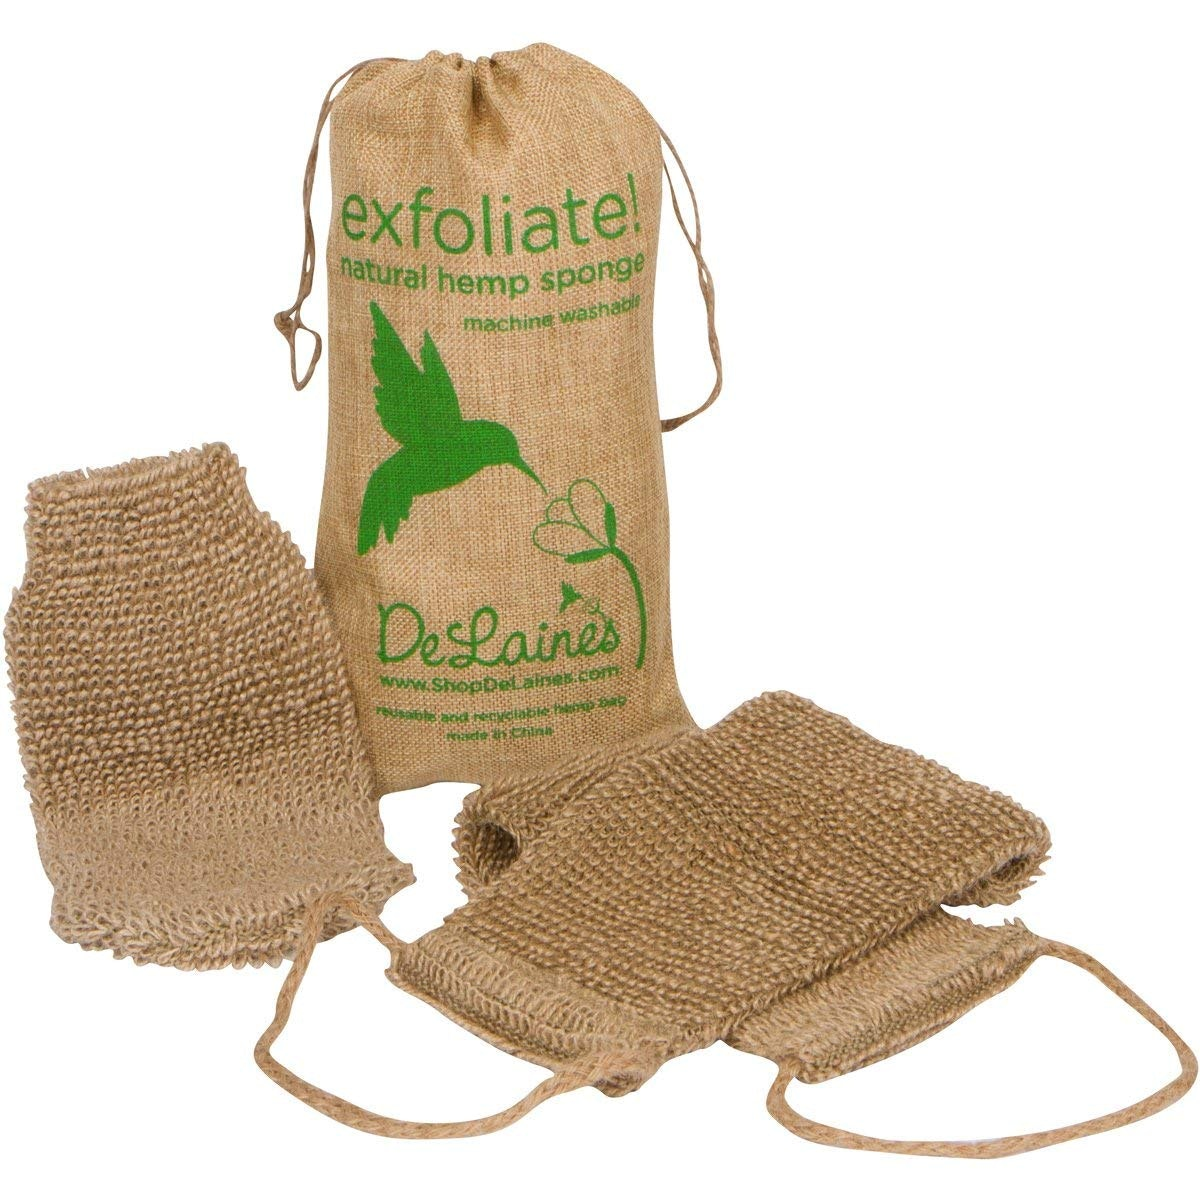 DeLaine's Kitchen and Bath Exfoliating Back and Body Scrubber